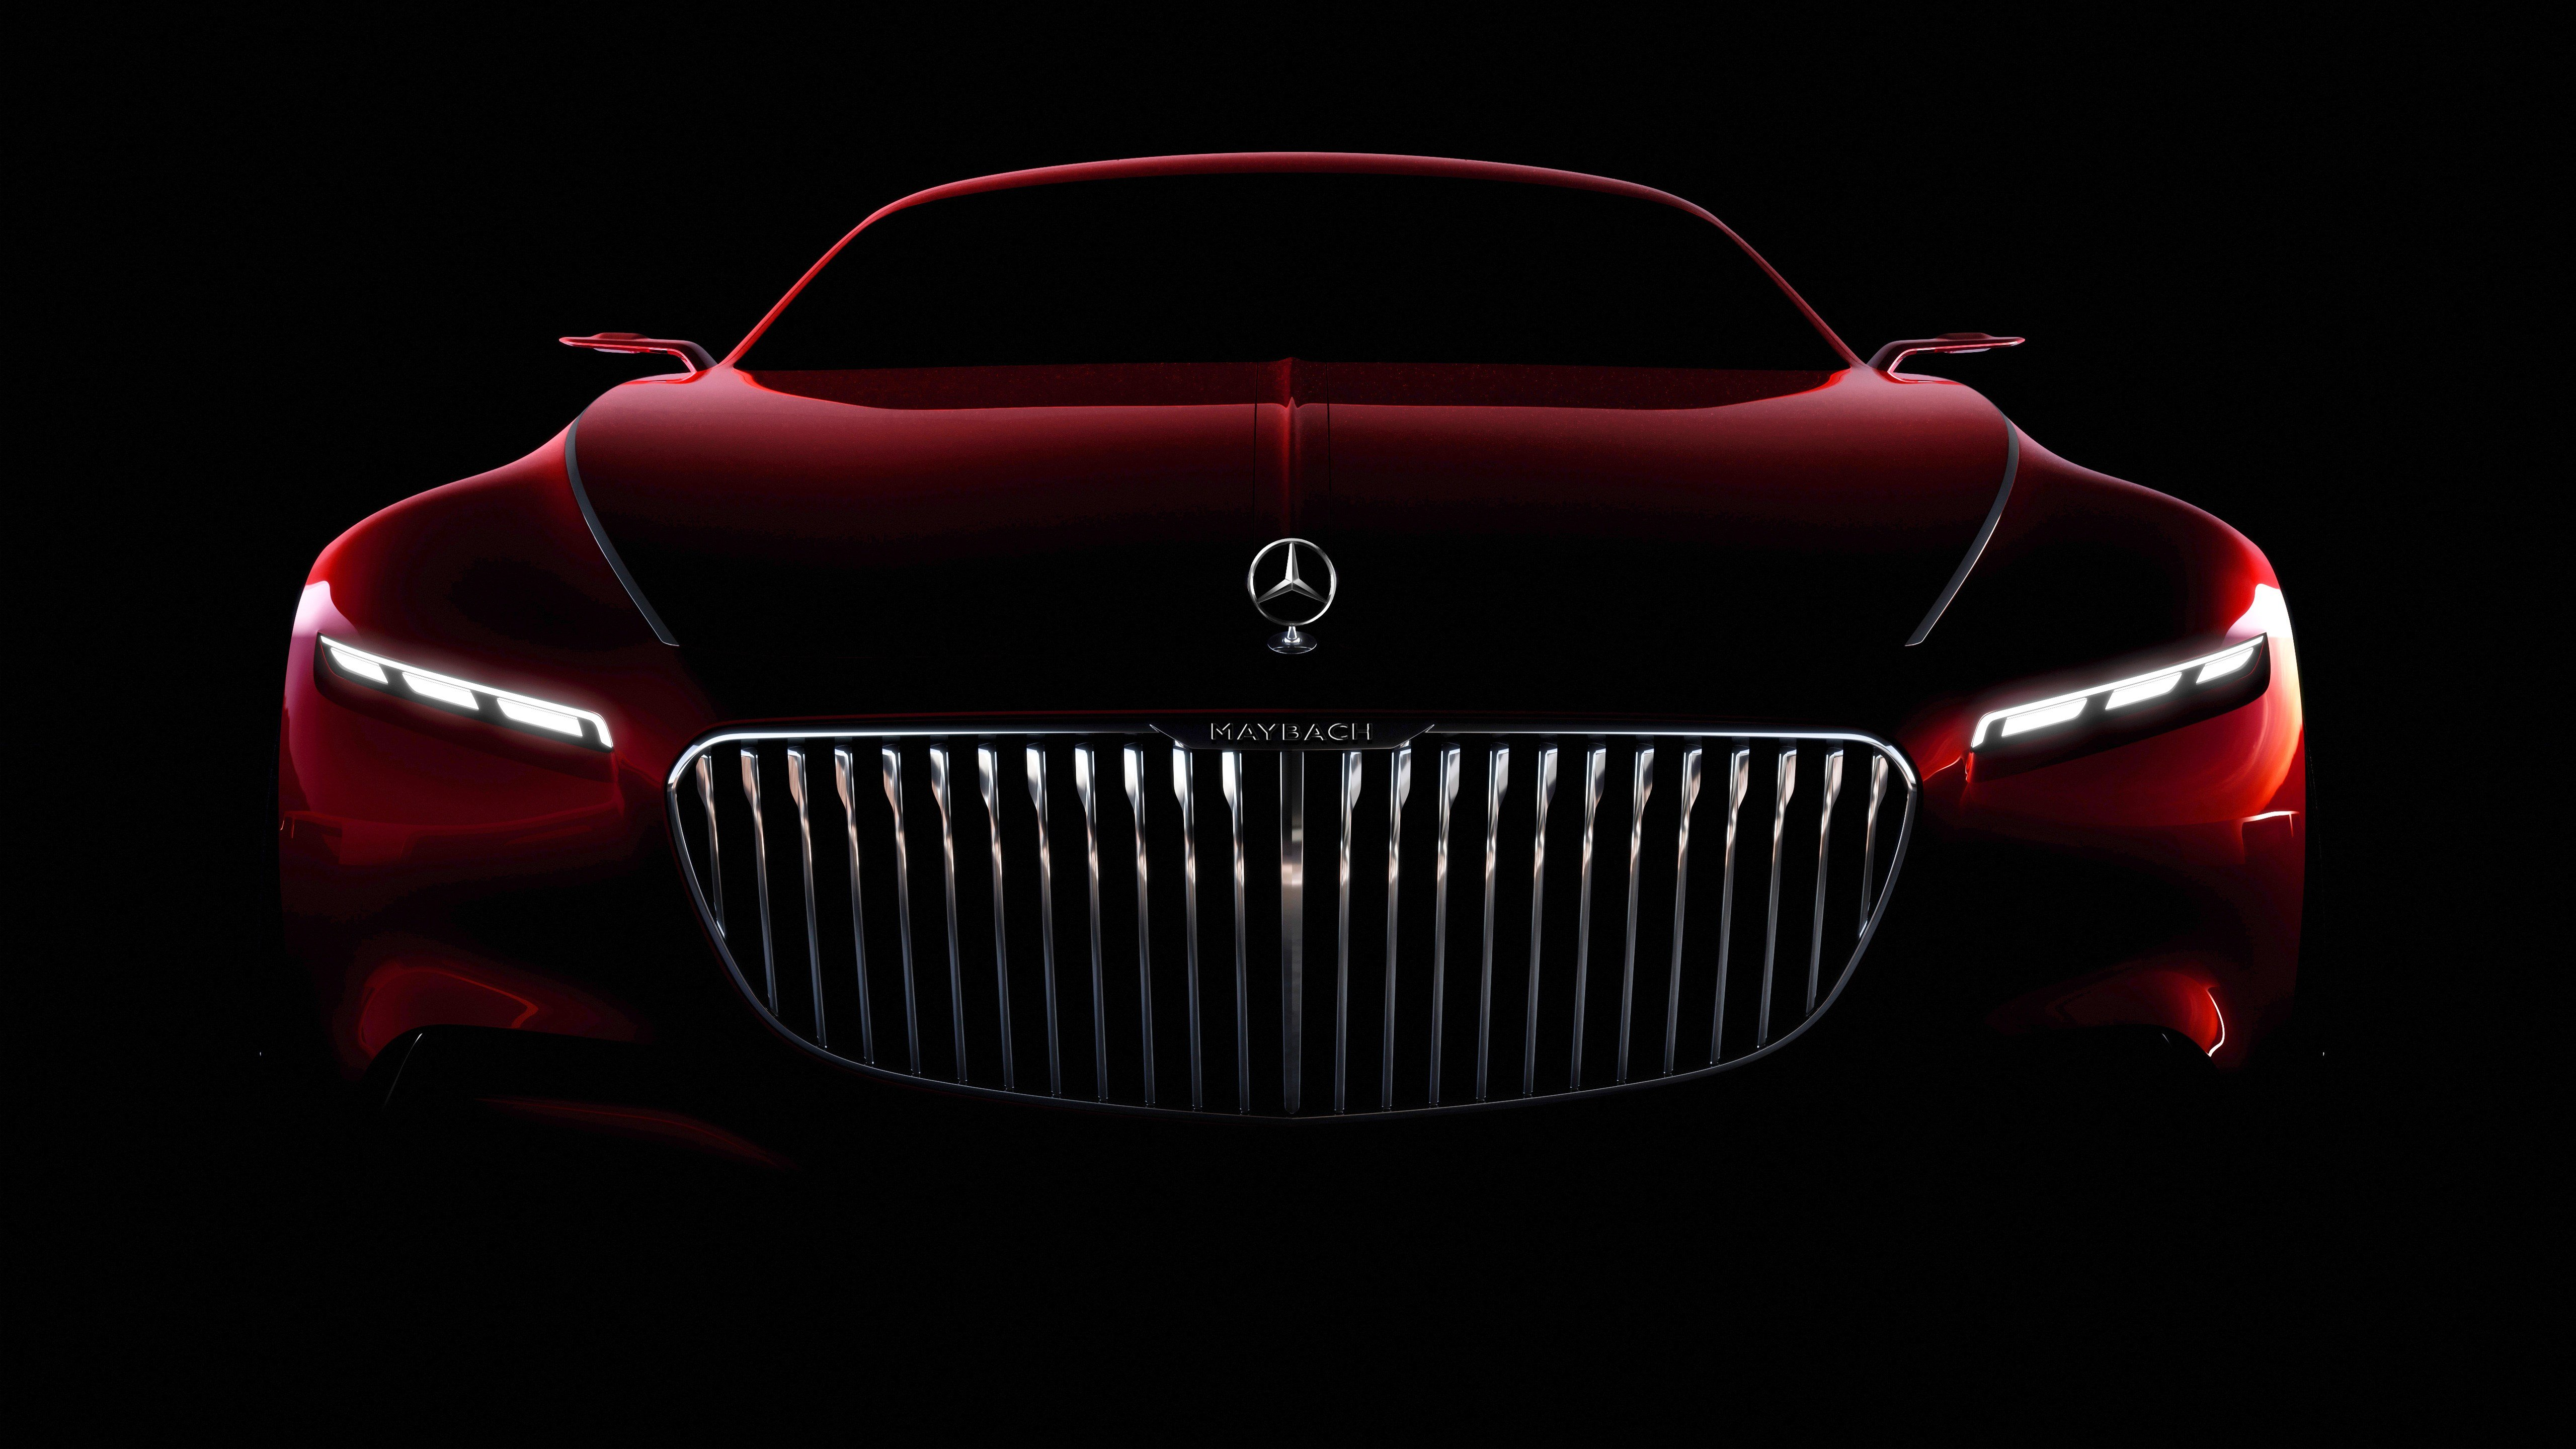 Latest Mercedes Maybach Coupe Concept 5K Wallpaper Hd Car Free Download